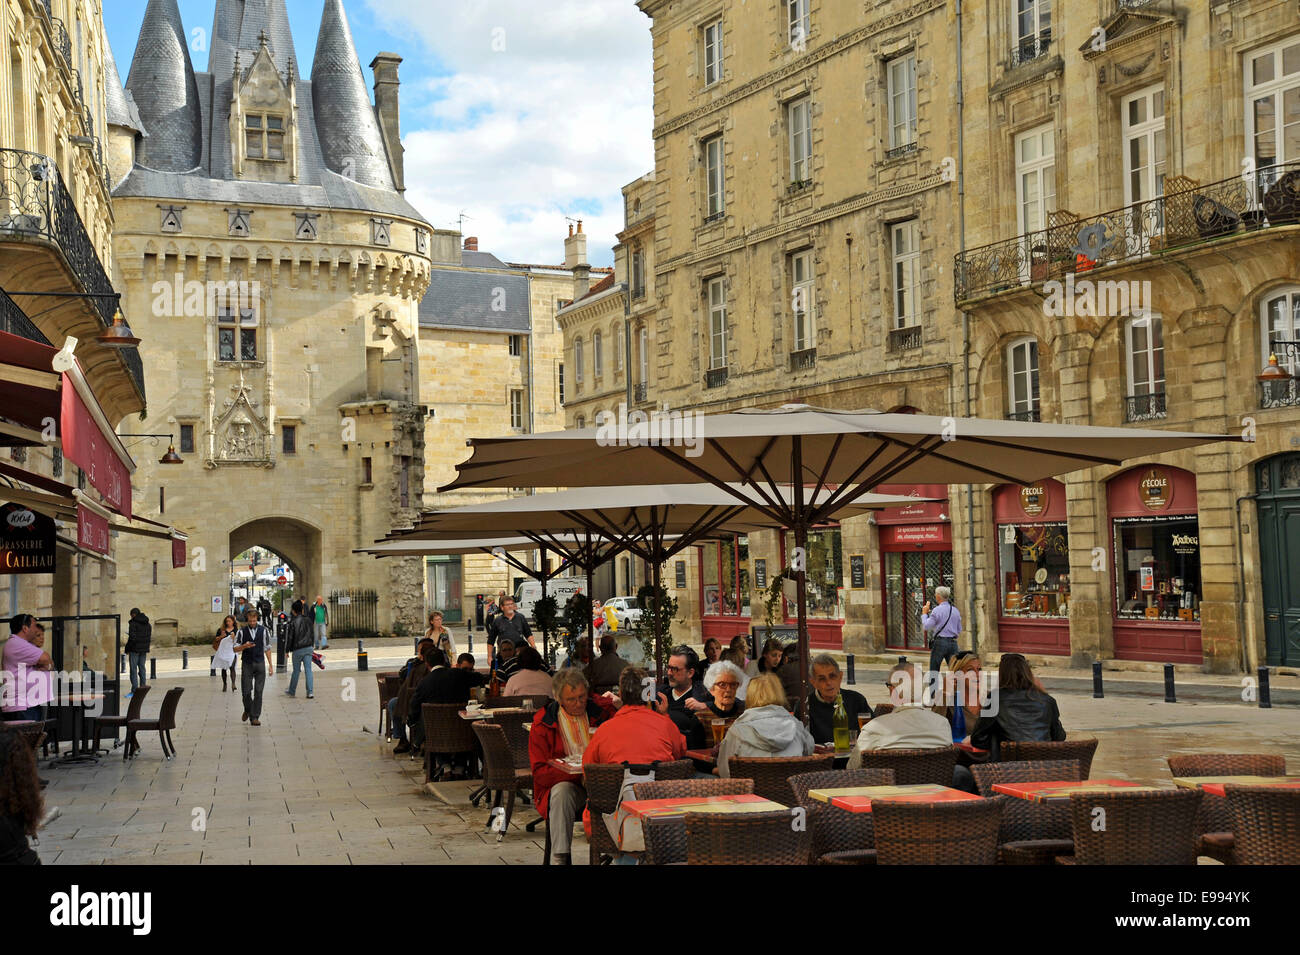 cafe scene in bordeaux city center france stock photo 74574855 alamy. Black Bedroom Furniture Sets. Home Design Ideas